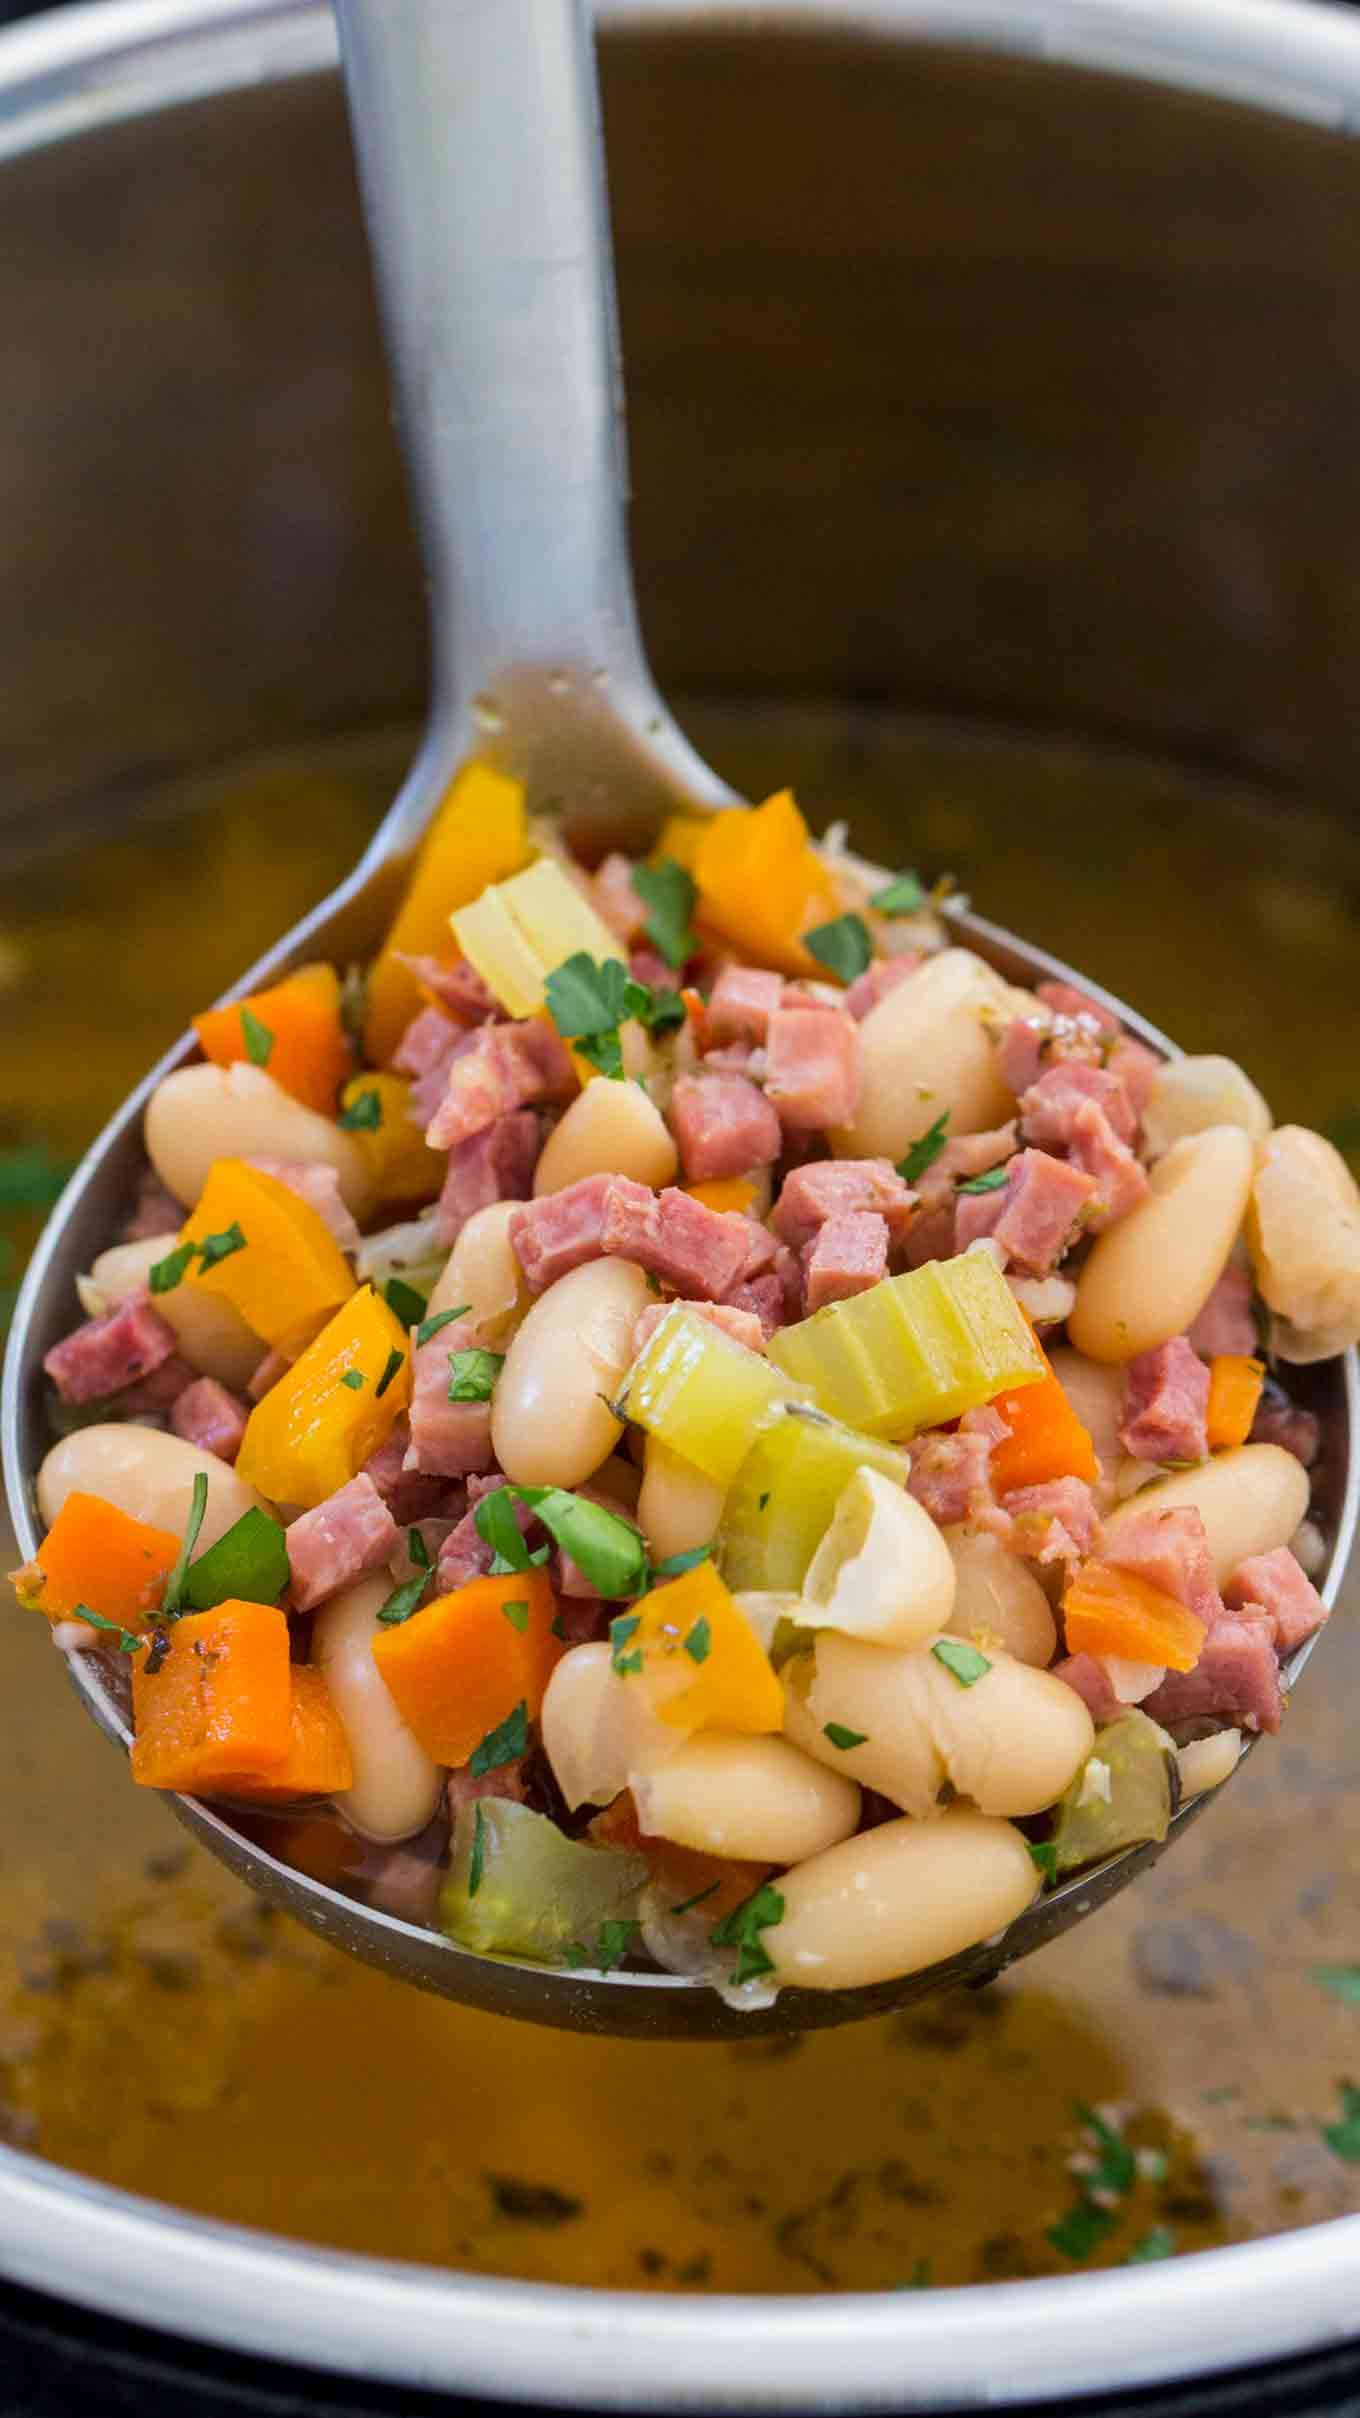 Instant Pot Ham And Bean Soup Recipe With Images Ham And Bean Soup Instant Pot Recipes